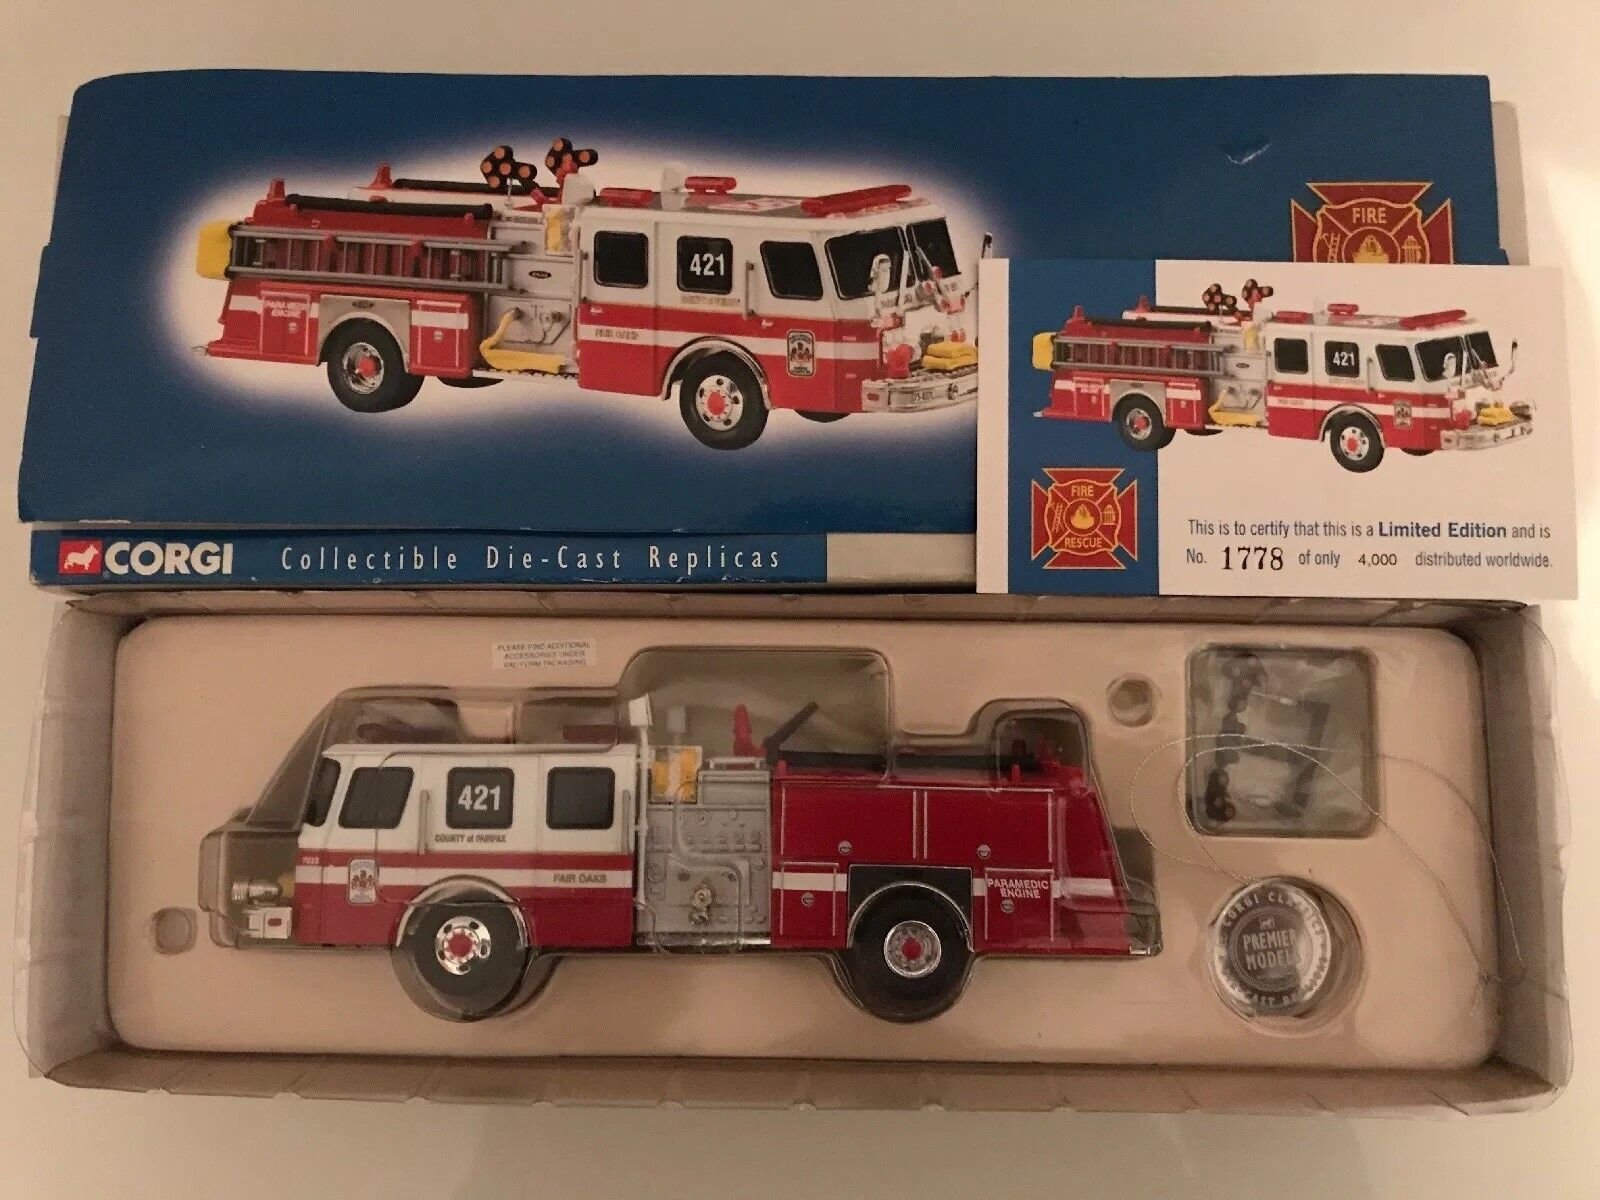 Corgi US52208 E - One Sidemount Fairfax County Fire Service Limited Edition